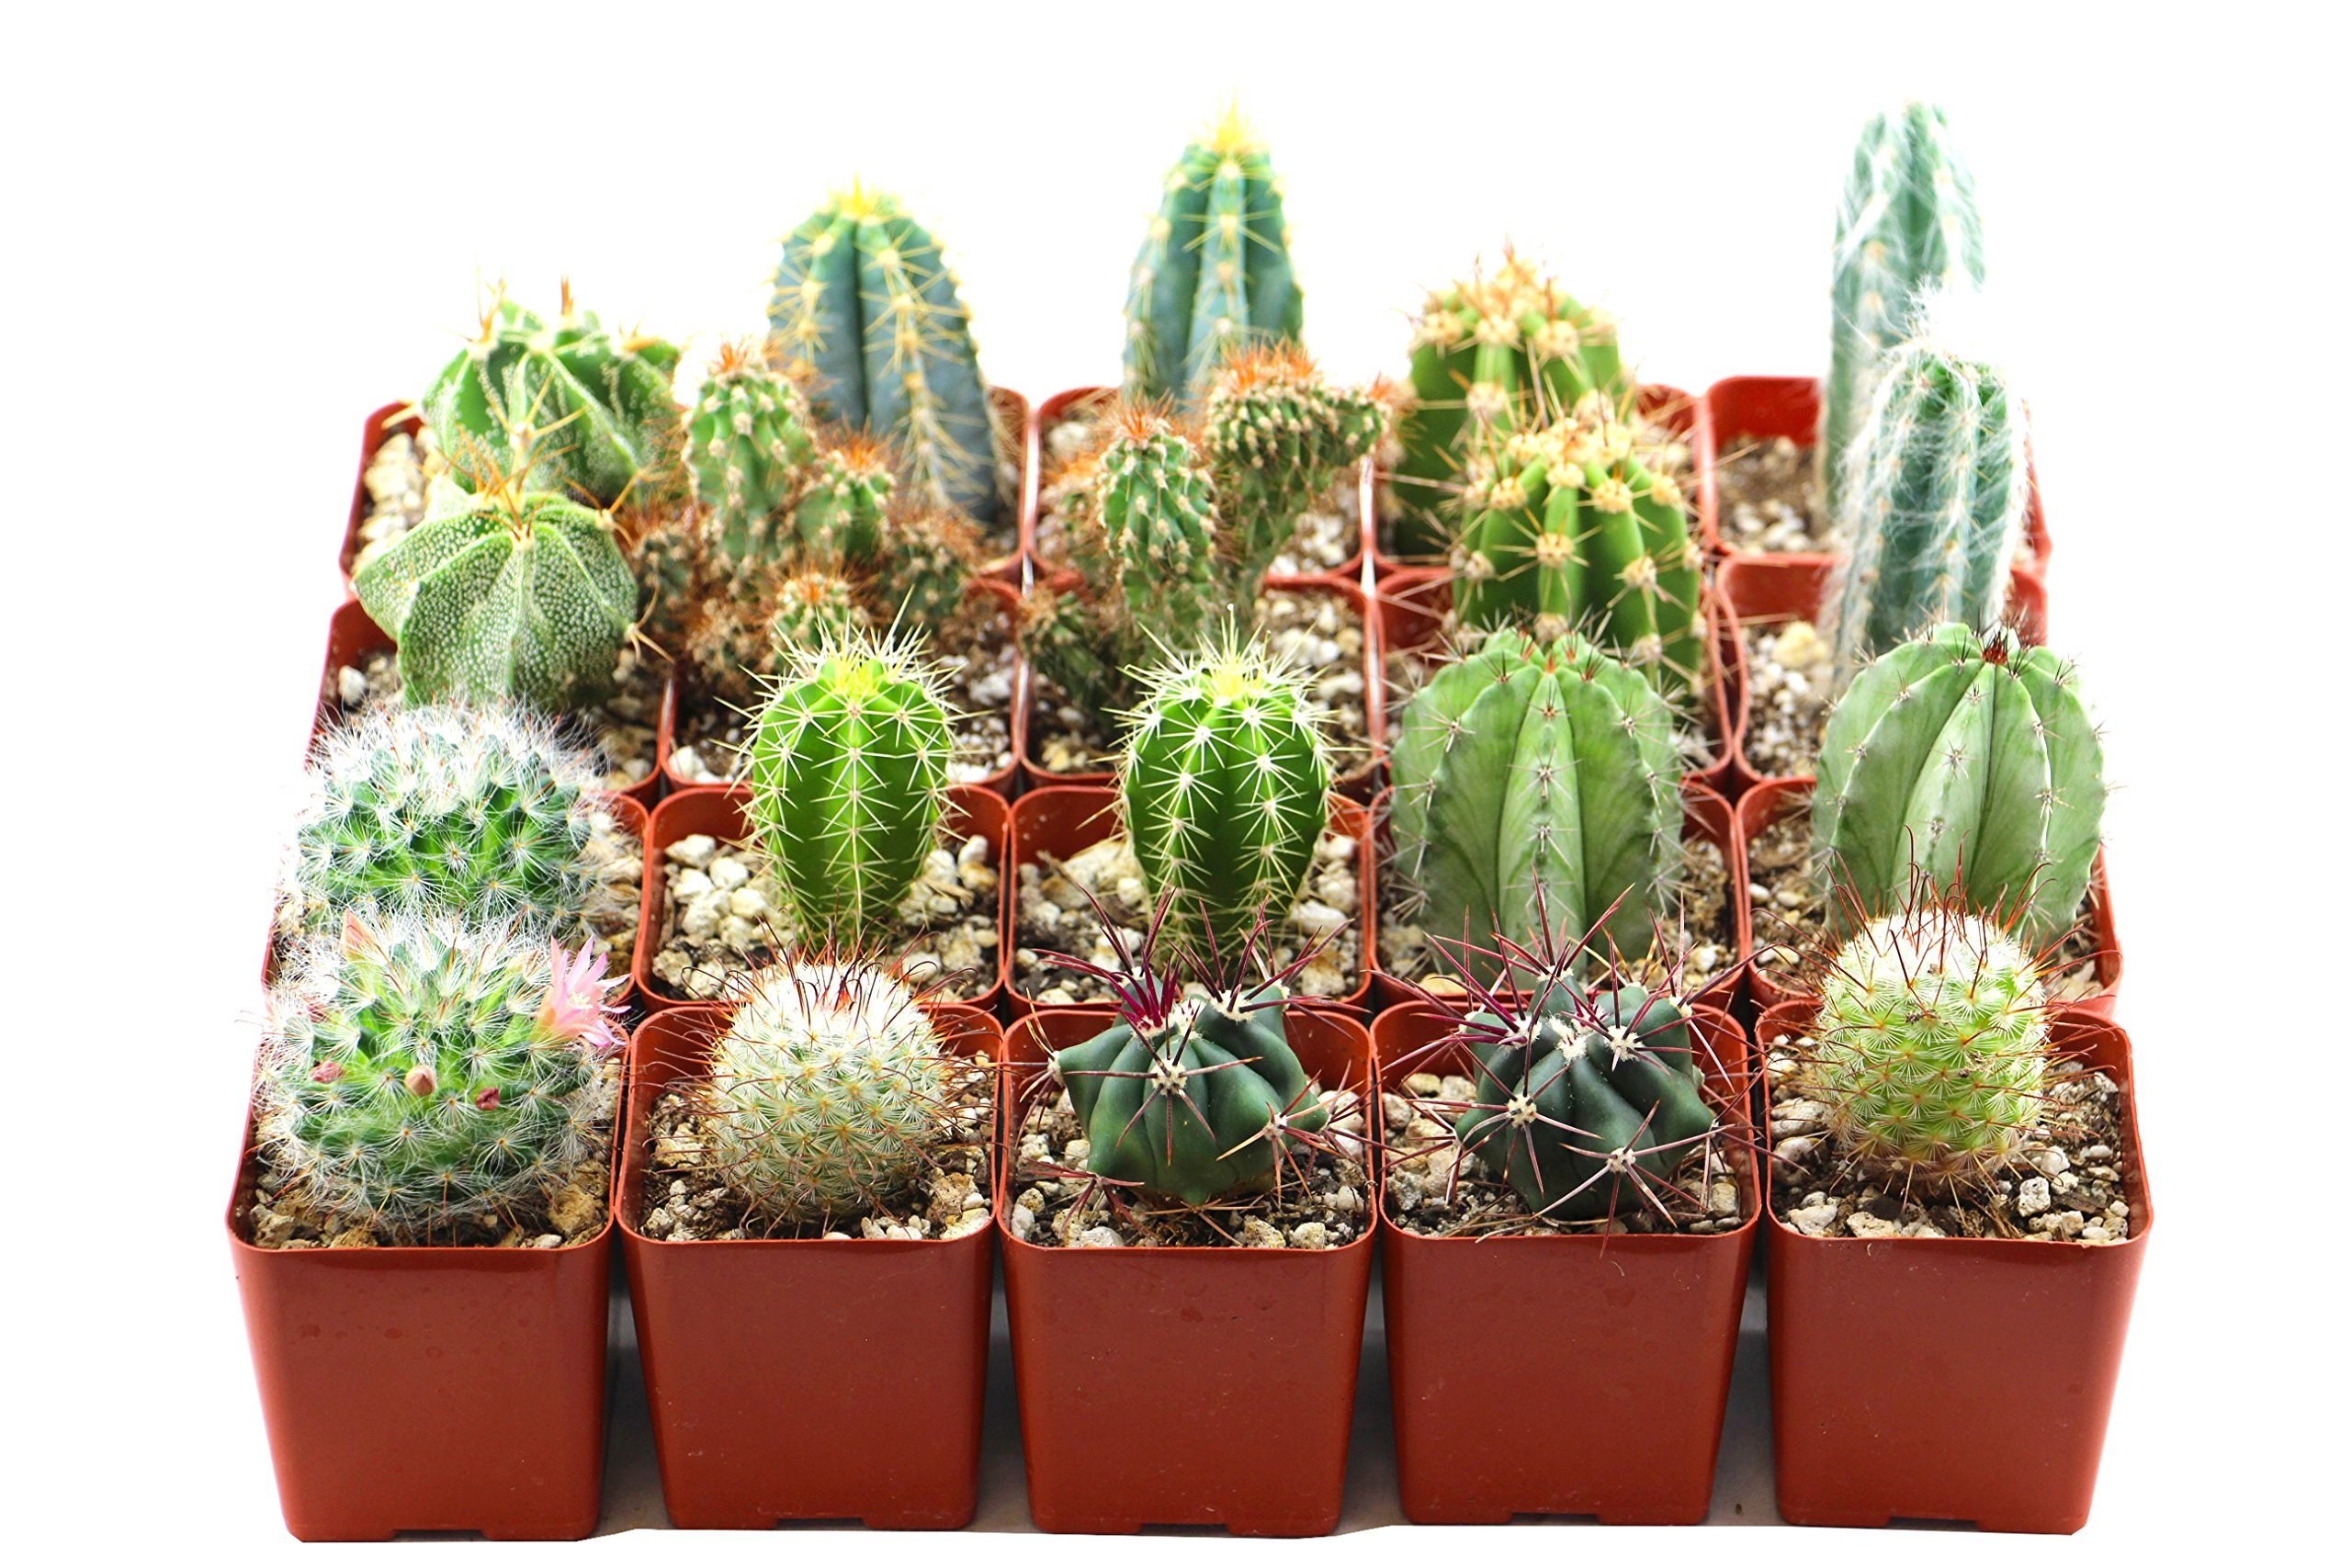 Shop Succulents | Cool Cactus of of Live Succulent Plants, Hand Selected Variety Pack of of Cacti in 2.5'' pots | Collection of 20